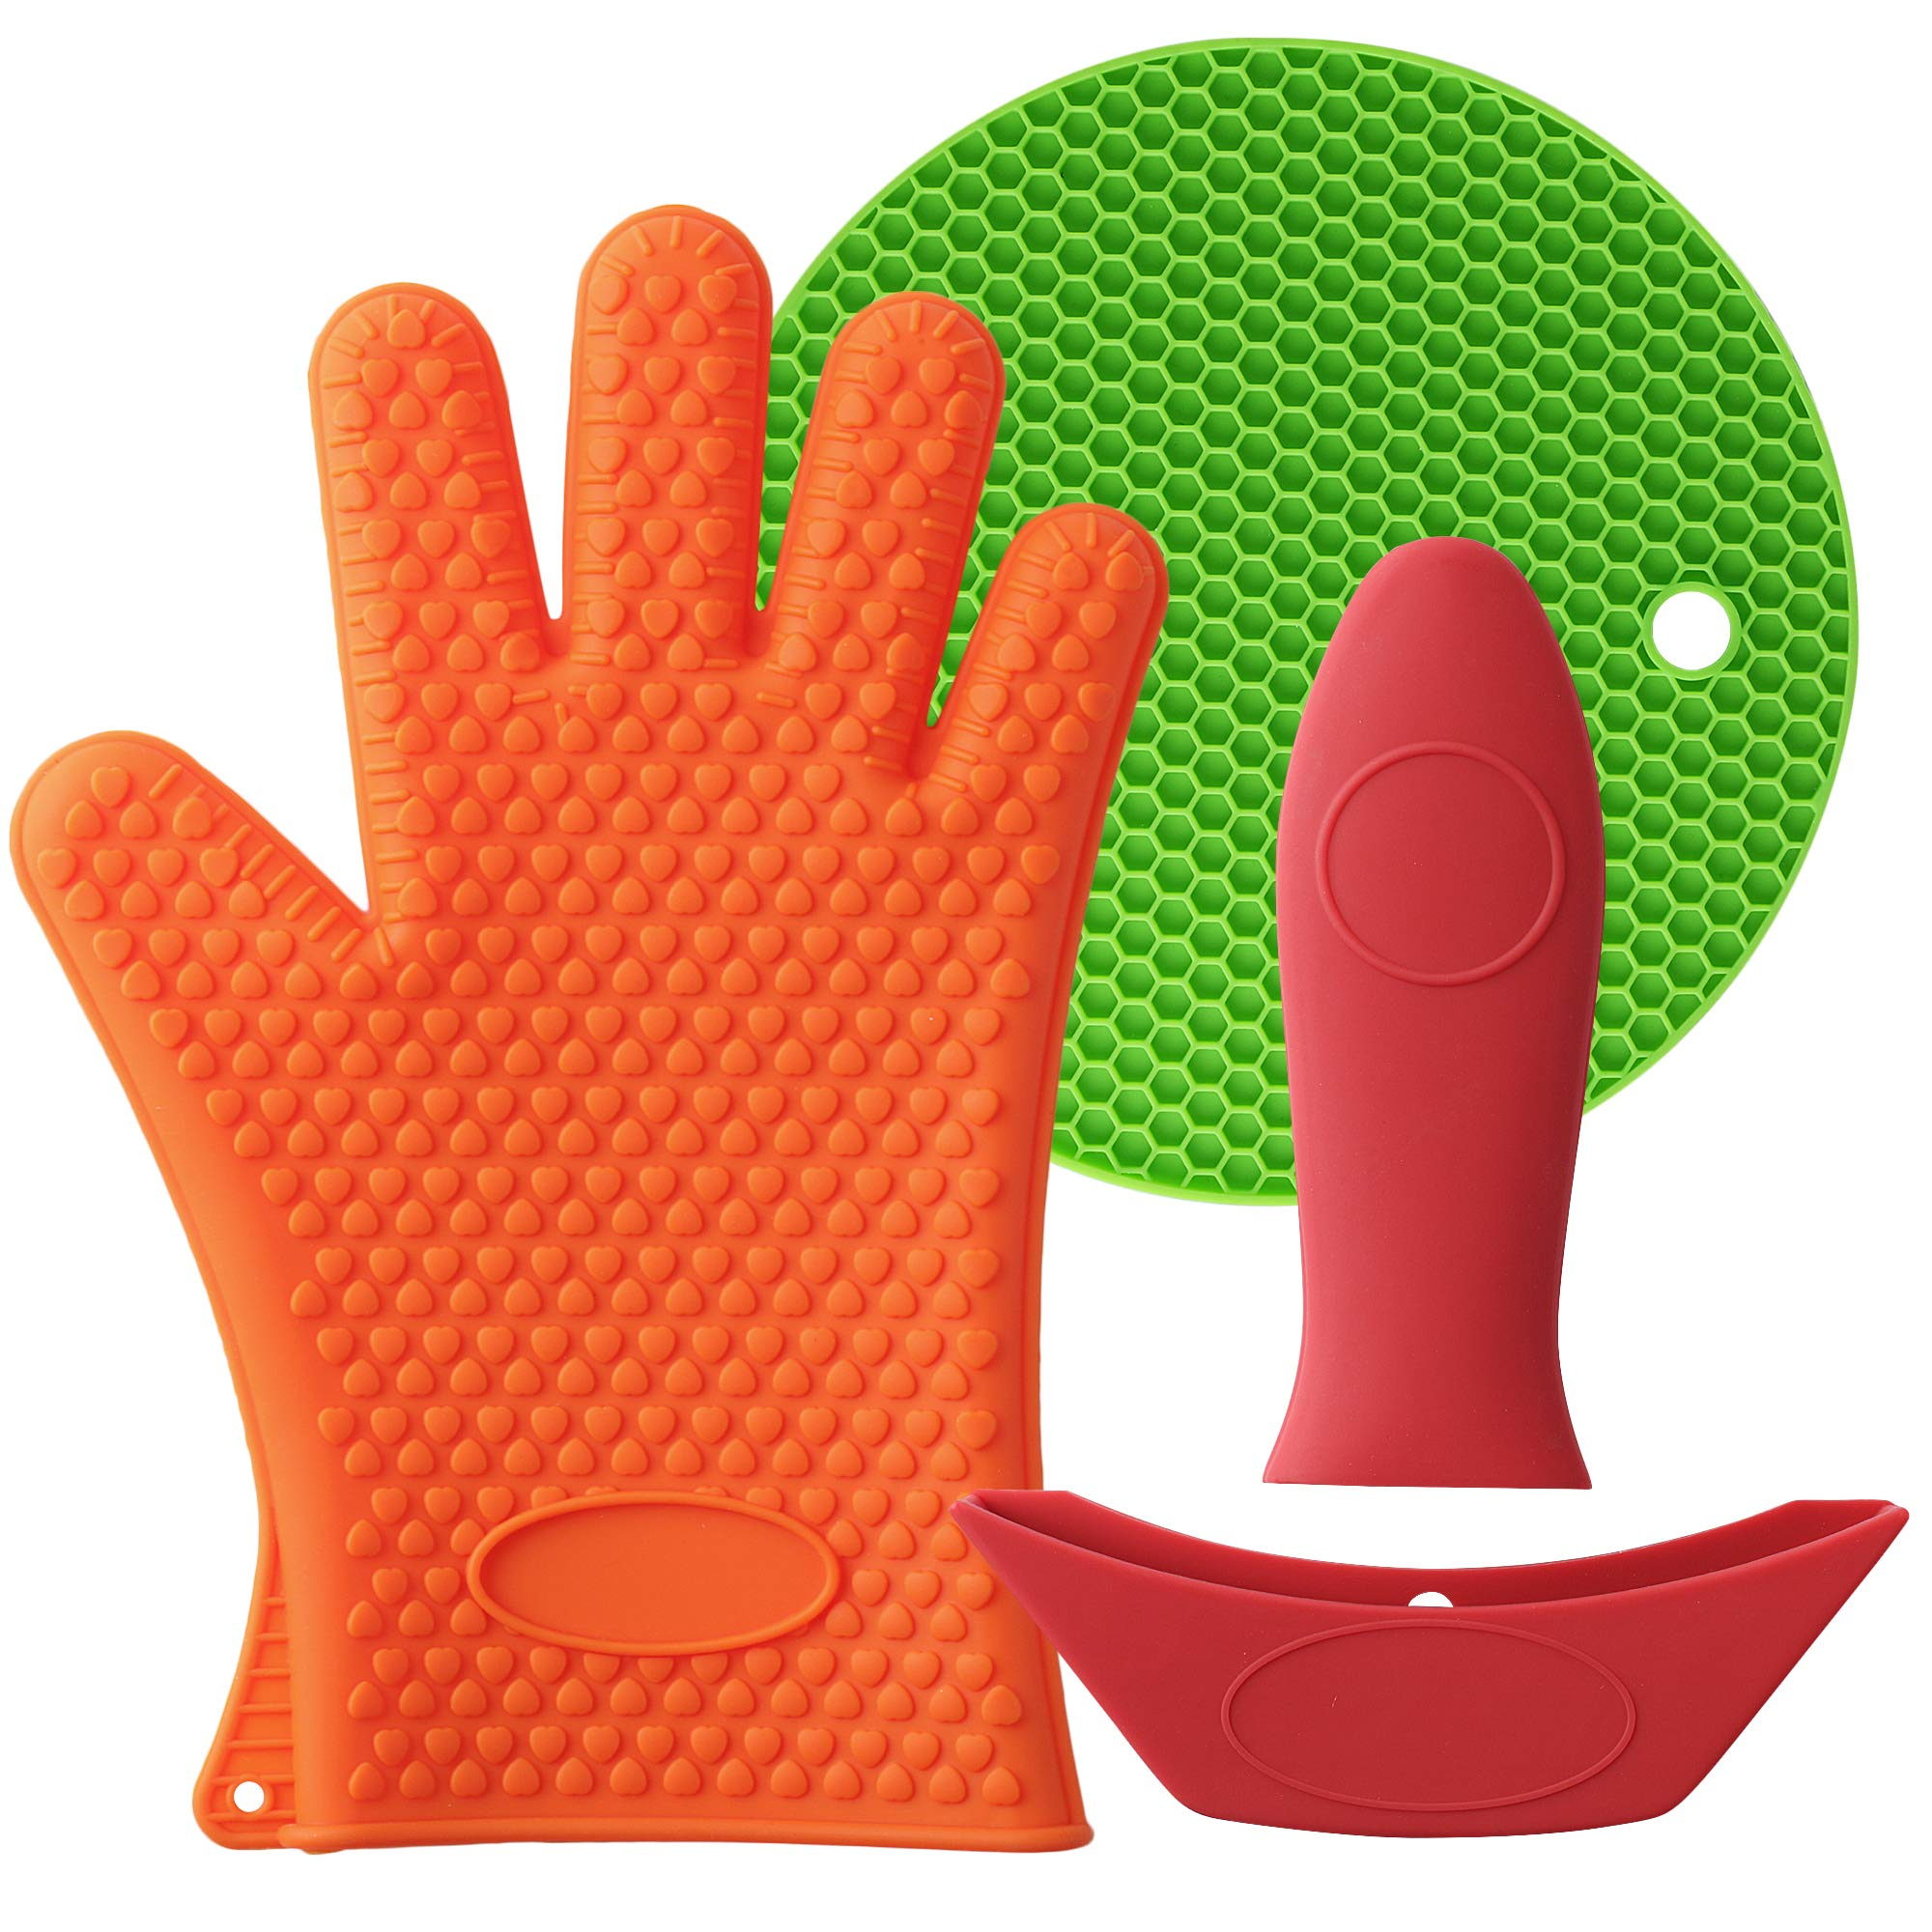 Mirandus Pack of 4 Heat Resistant Silicone Kitchen Tools & Accessories - 1 Oven Glove, 1 Trivet Mat, 1 Pan Handle Cover & 1 Assist Handle Holder for BBQ, Cooking & Baking - Dishwasher Safe